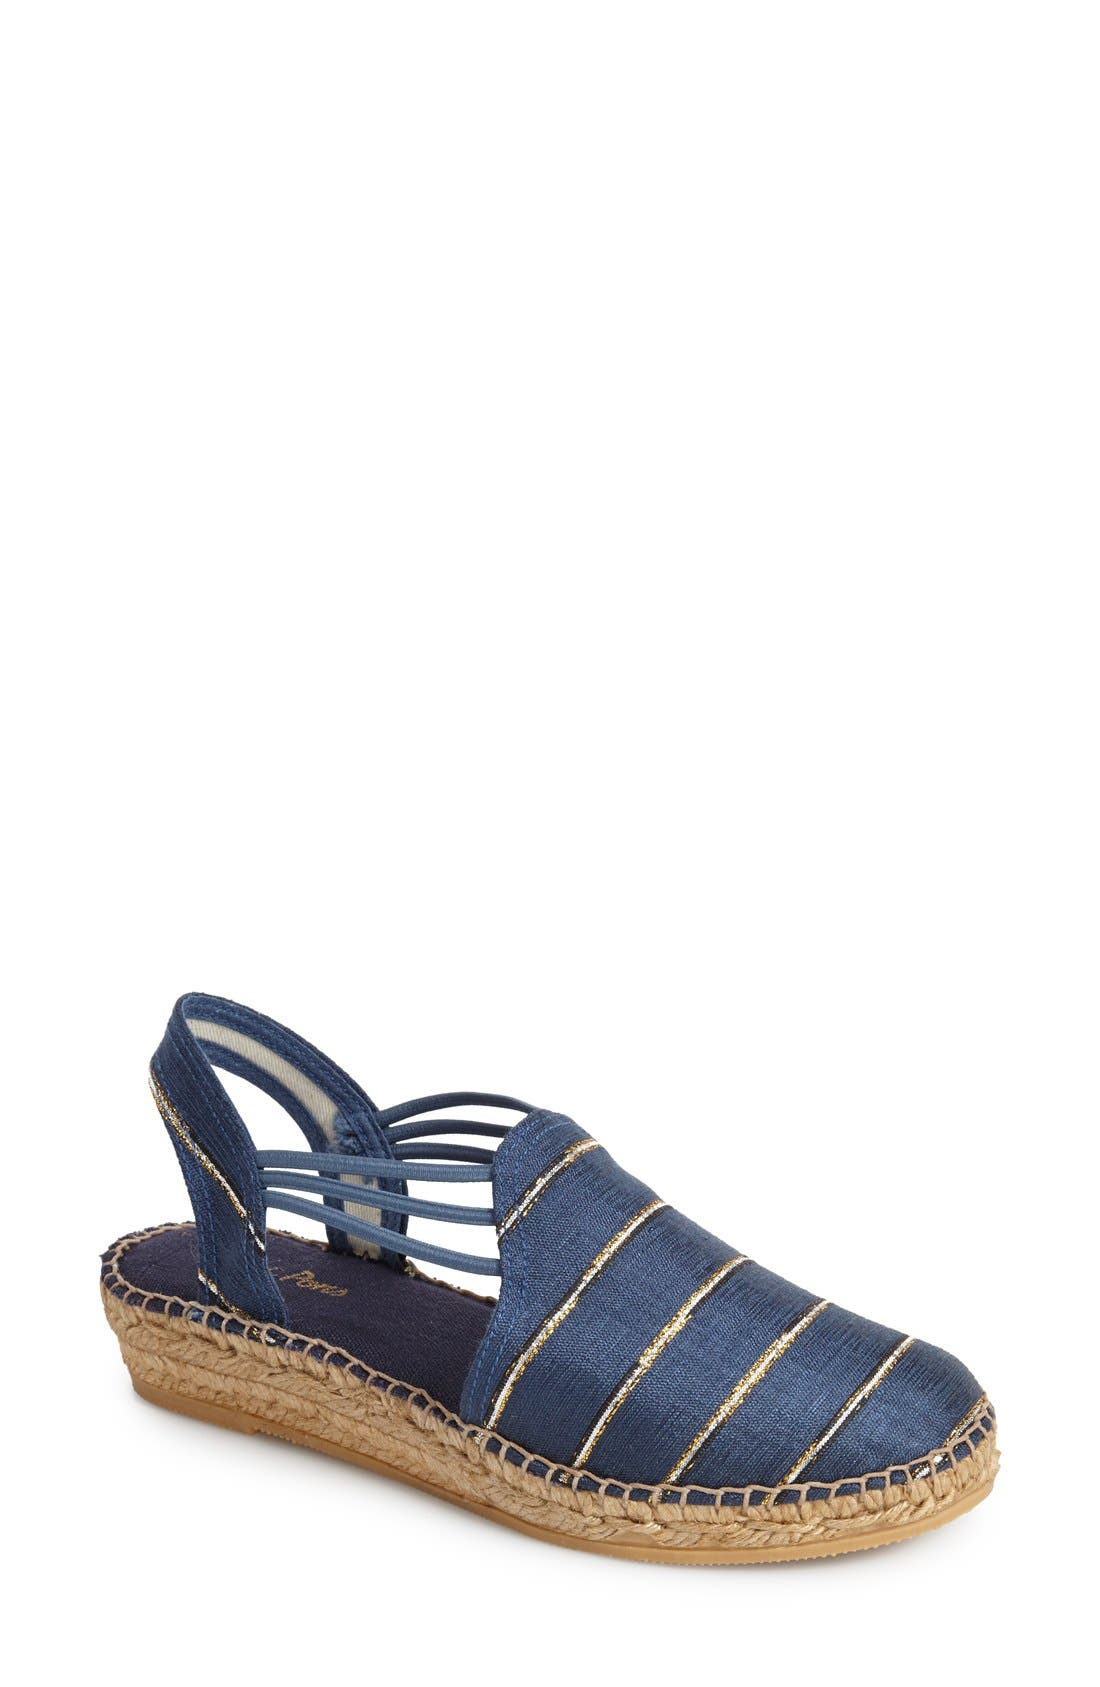 'Nantes' Silk Stripe Sandal,                         Main,                         color, Stripe Navy